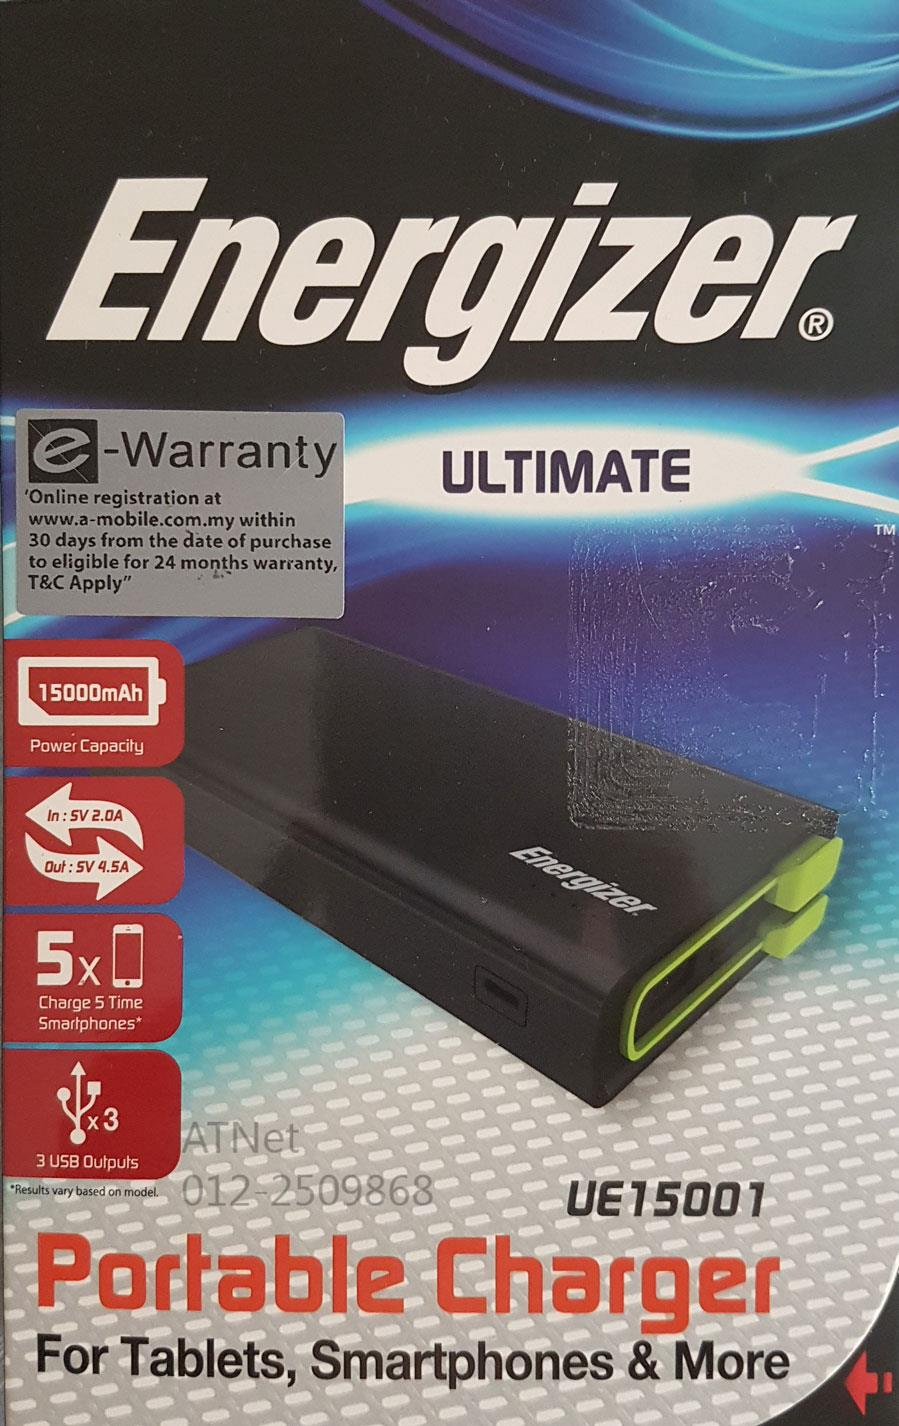 ENERGIZER 15000MAH 4.5A PORTABLE CHARGER UE15001